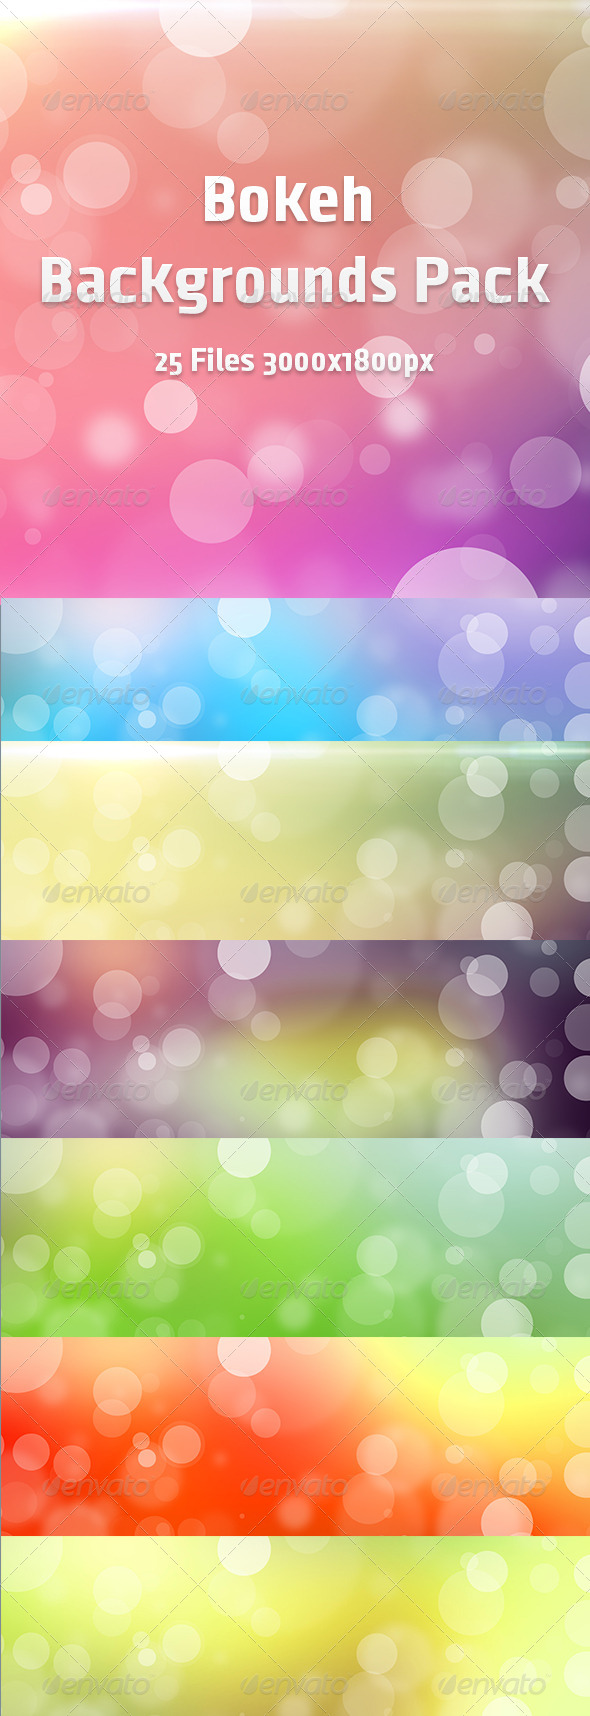 GraphicRiver Bokeh Backgrounds Pack 6695504